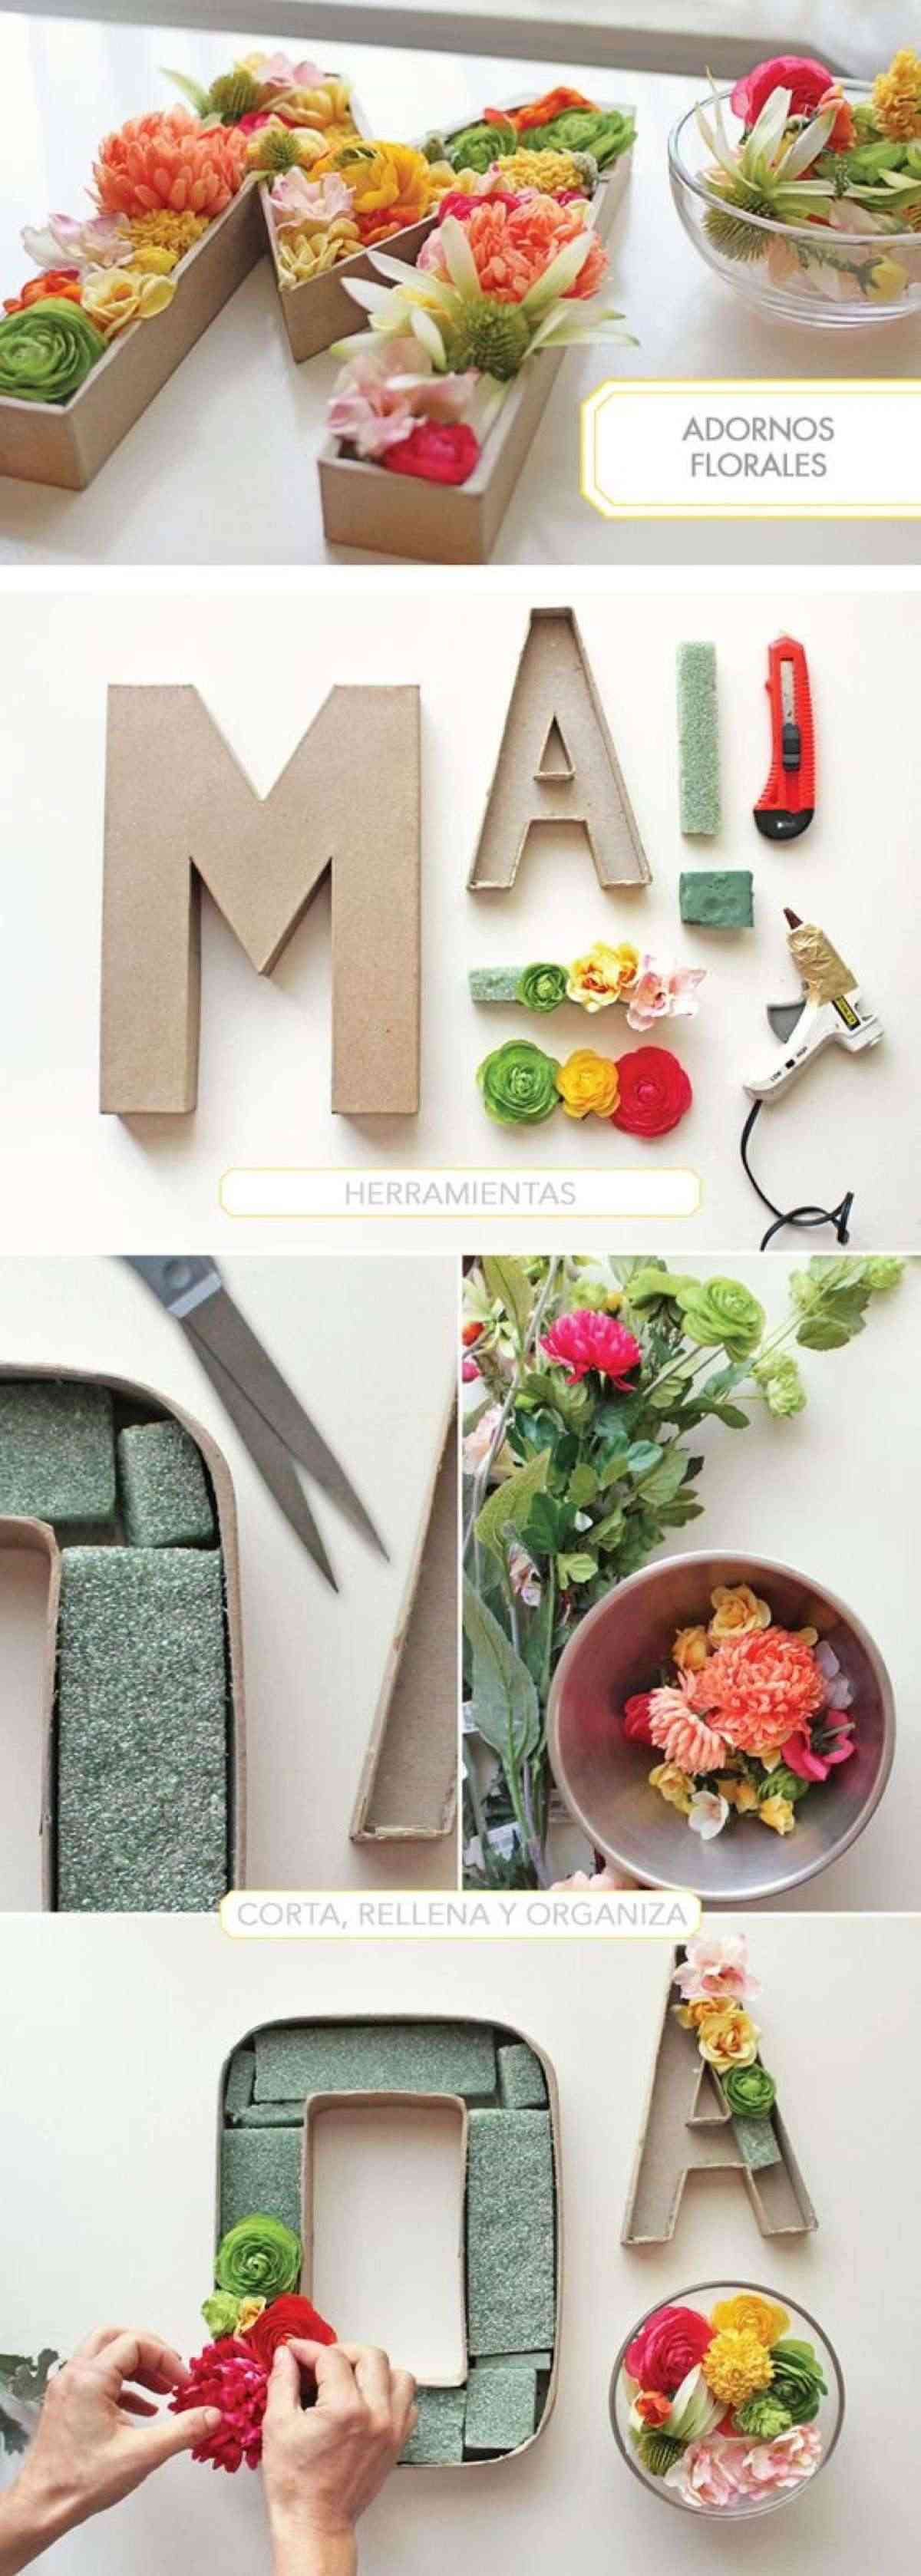 Manualidades c mo hacer letras con relieve para decorar for Decoraciones para hacer en casa